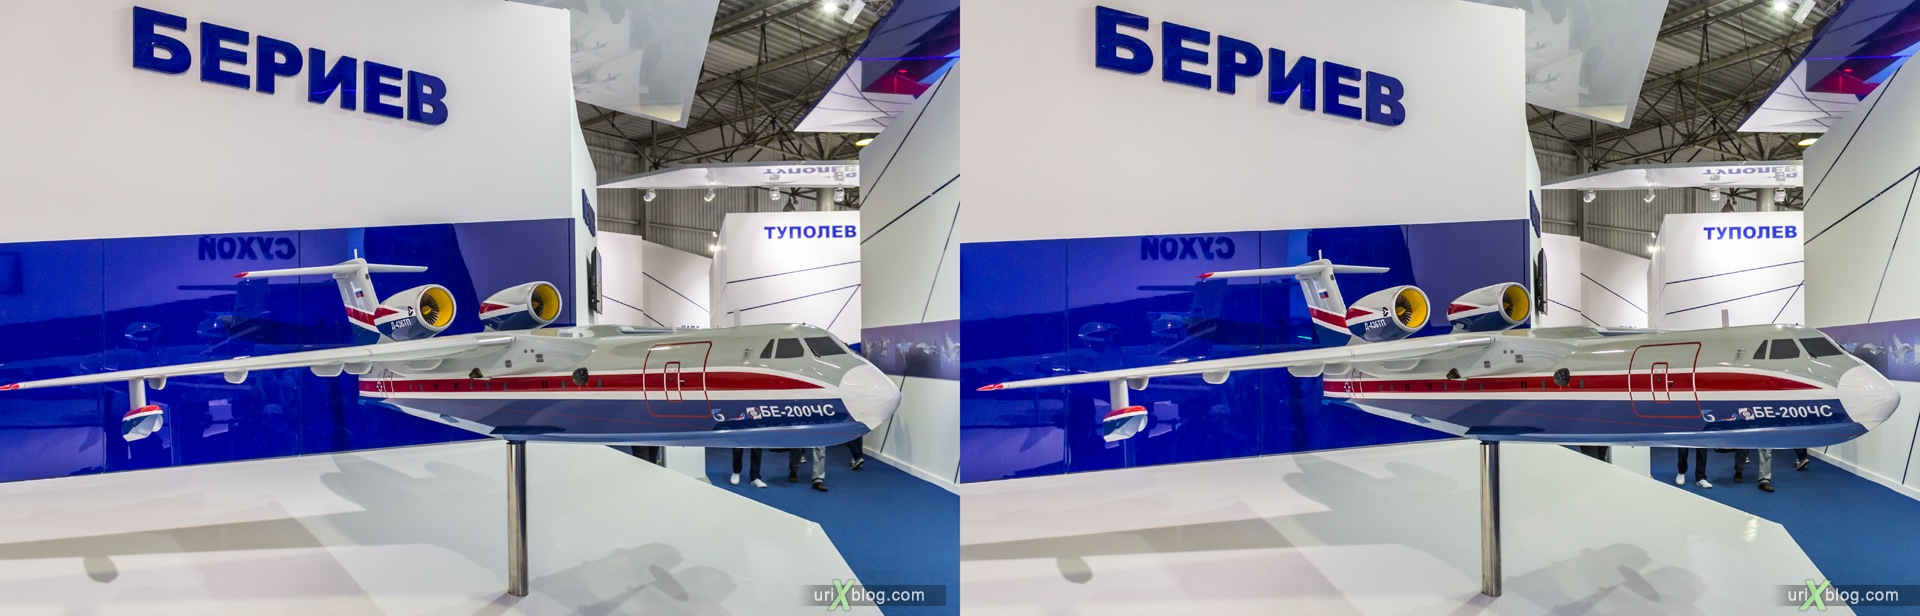 2013, MAKS, International Aviation and Space Salon, Russia, Ramenskoye airfield, pavilion, hall, 3D, stereo pair, cross-eyed, crossview, cross view stereo pair, stereoscopic